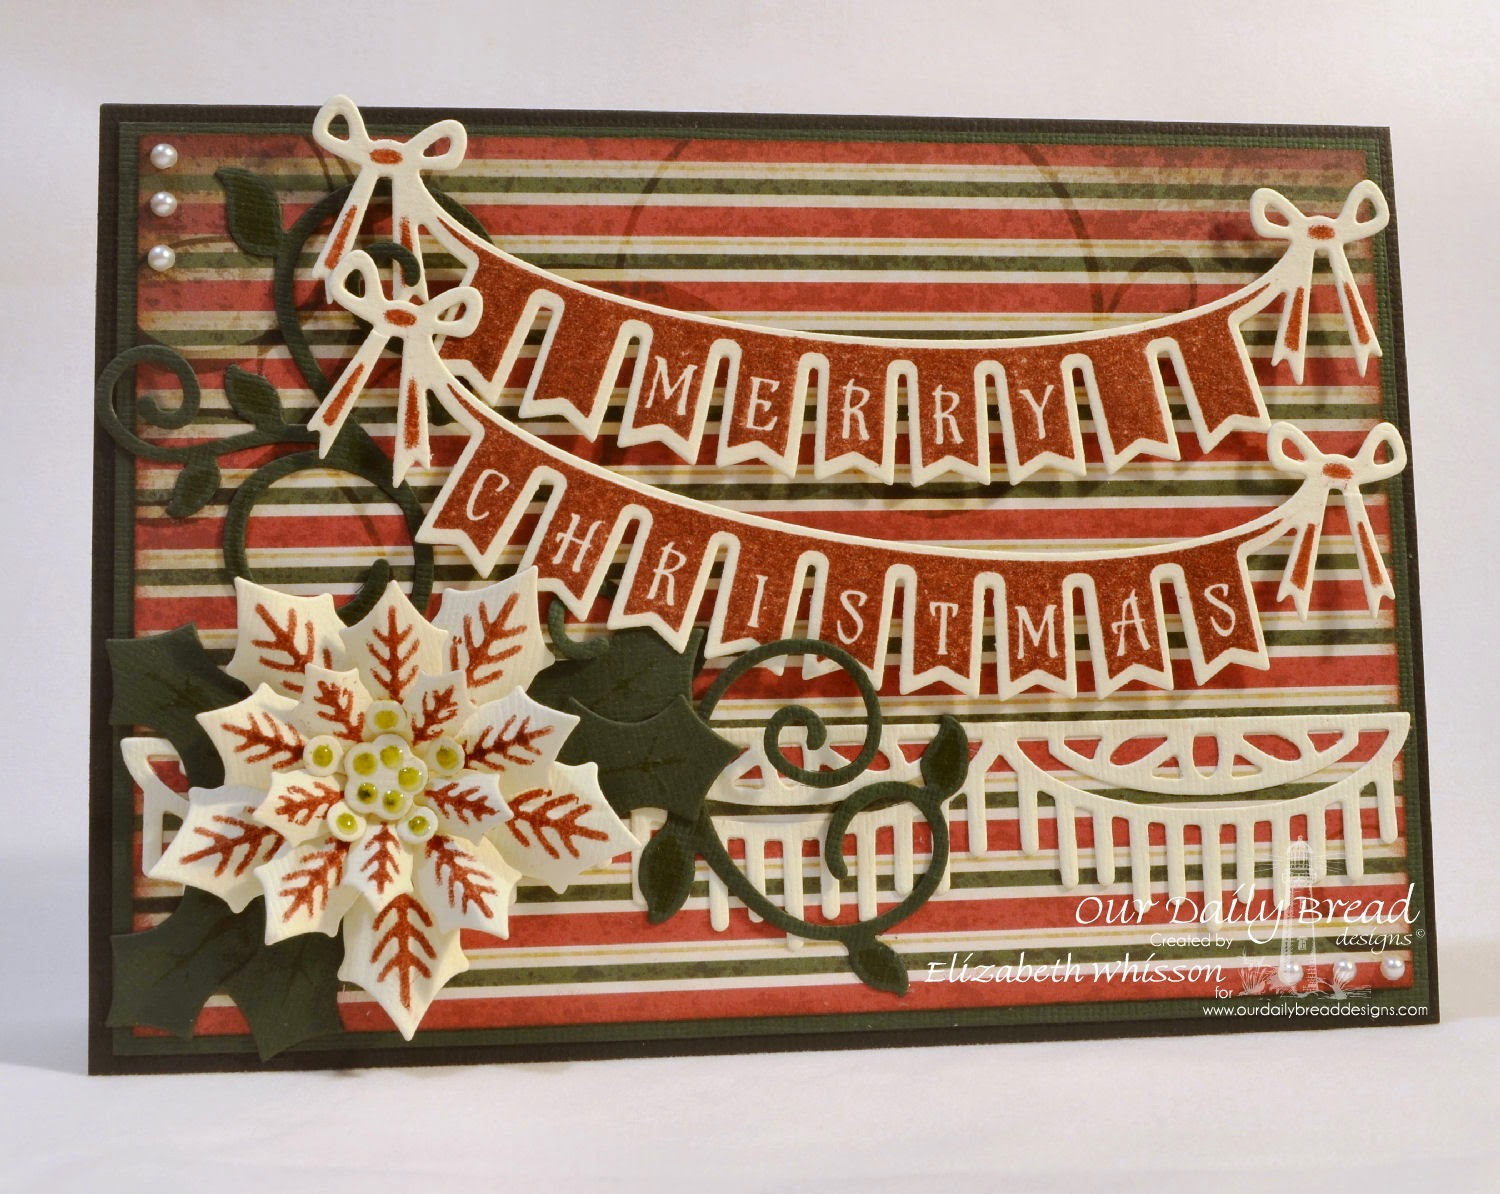 Our Daily Bread Designs, Christmas Pennant Swag, Pennant Swag Dies, Peaceful Poinsettia Dies, Circle Ornament Dies, Beautiful Borders Dies, Fancy Foliage Dies, Christmas Paper Collection 2013, Designed by Elizabeth Whisson